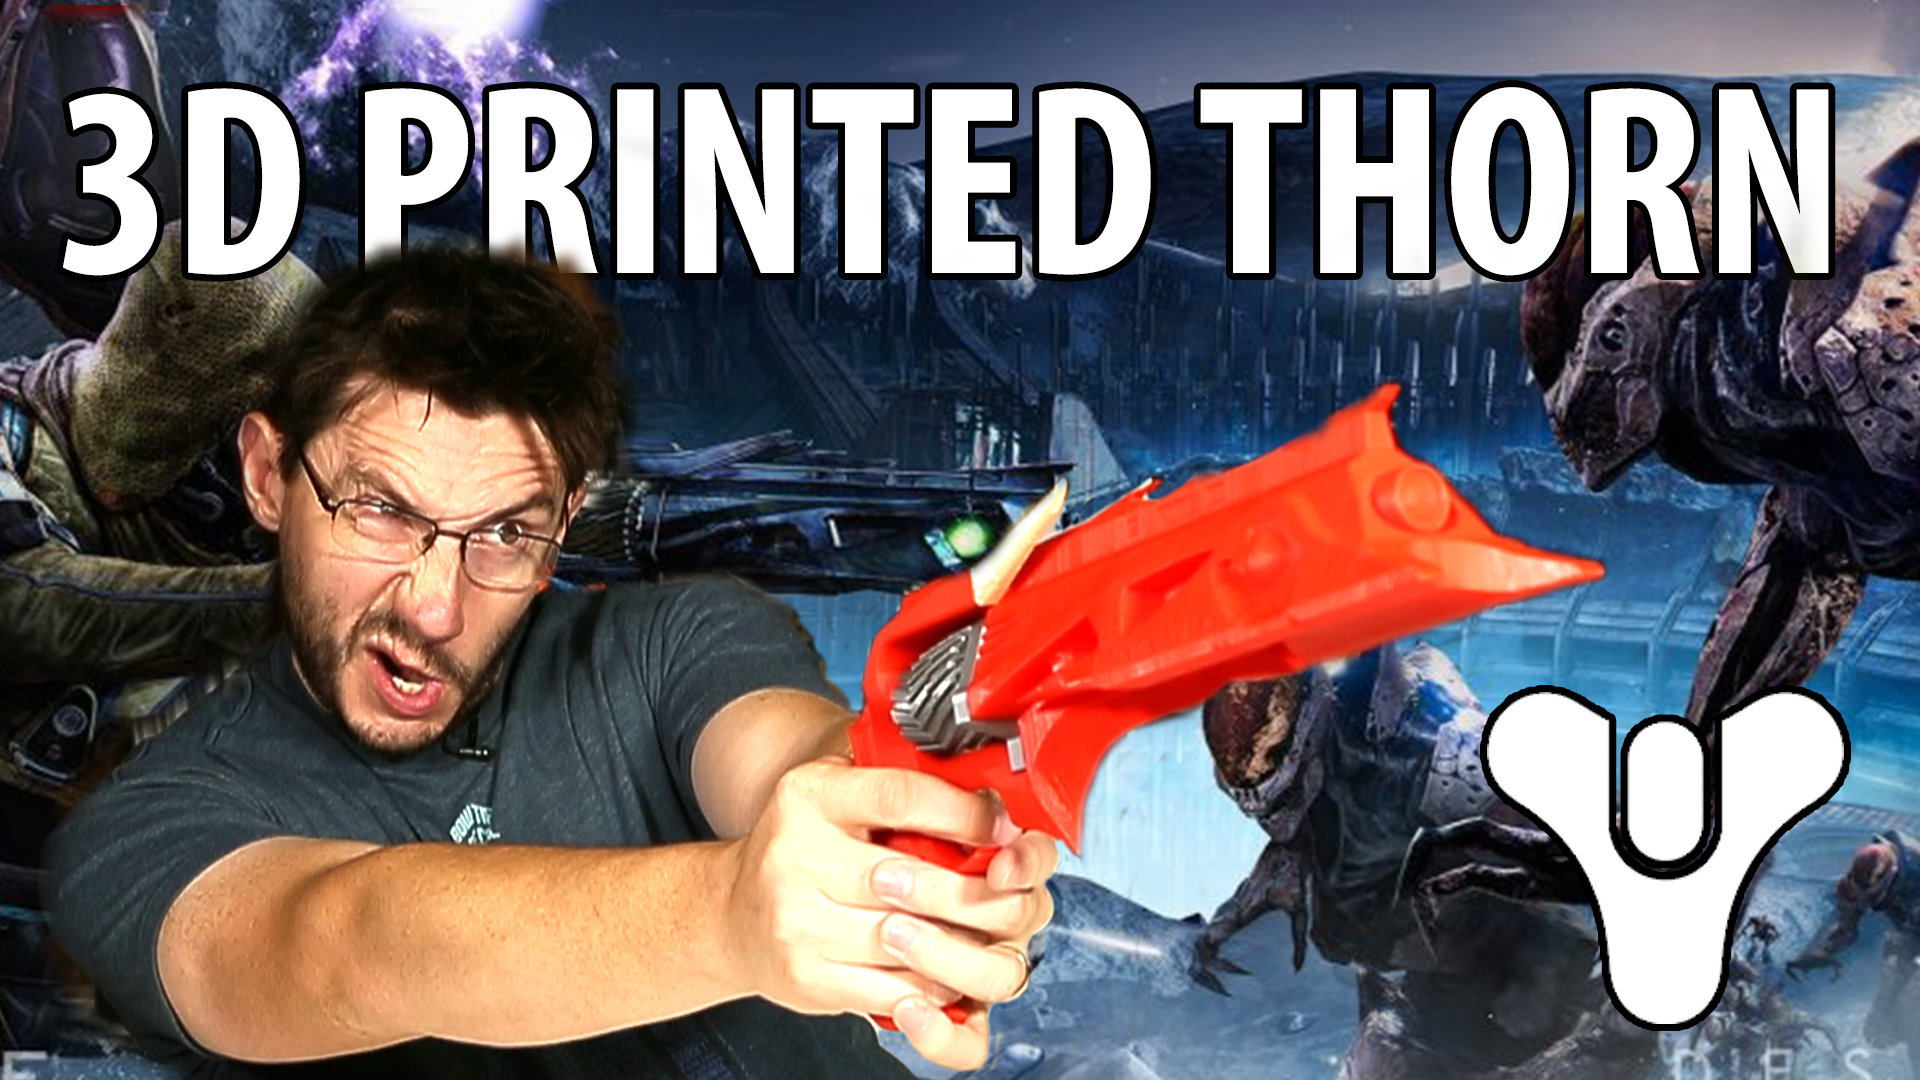 Assembling the 3D Printed Thorn Year 3 from Destiny